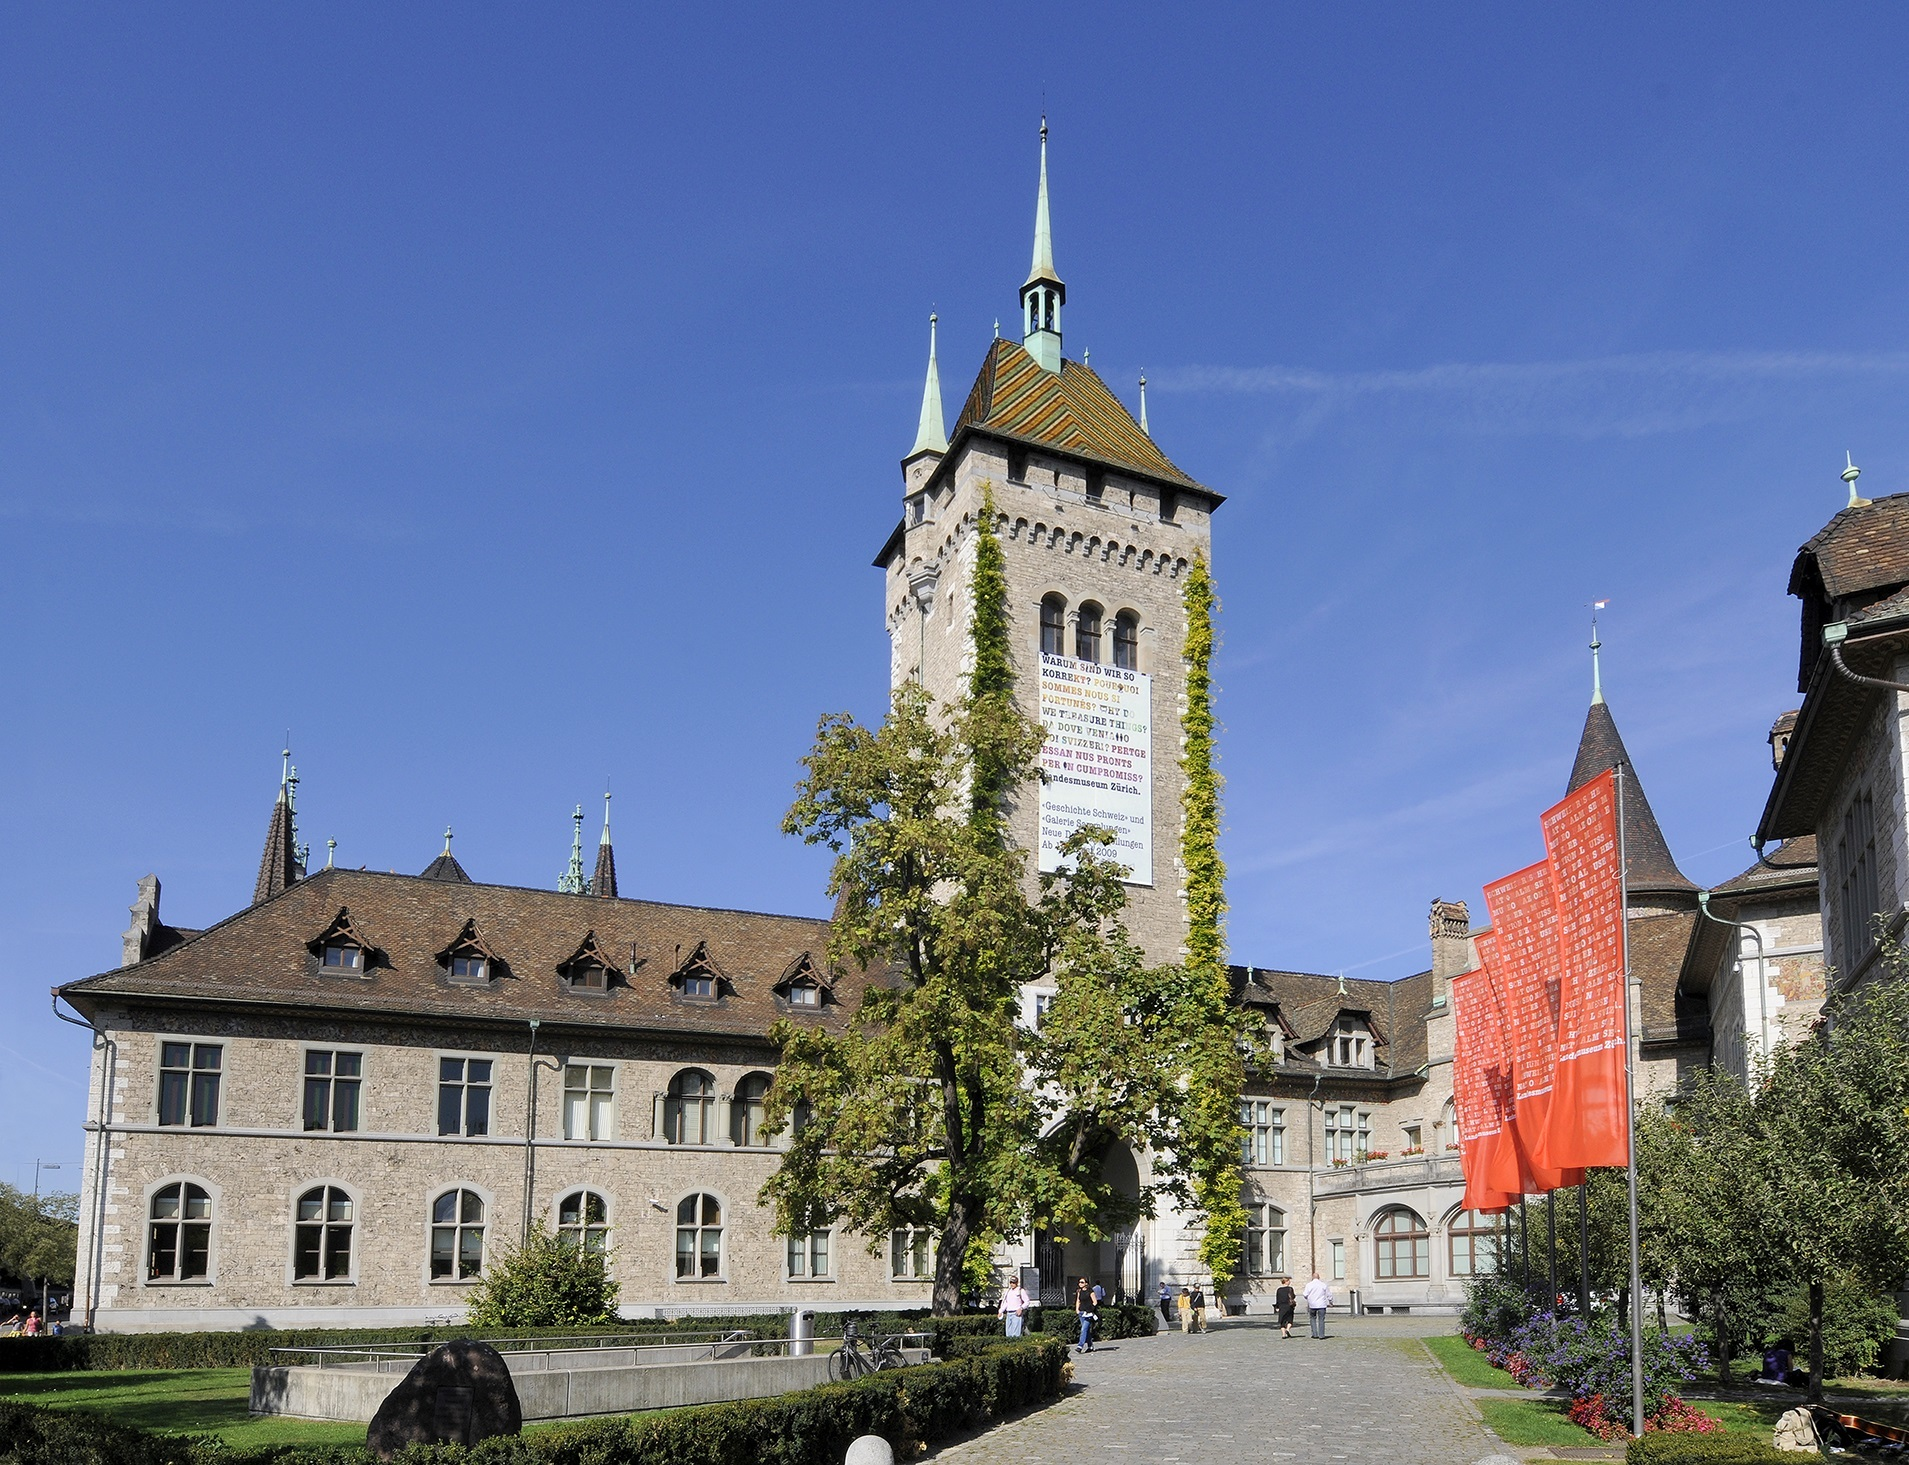 Zurich's best museums and galleries